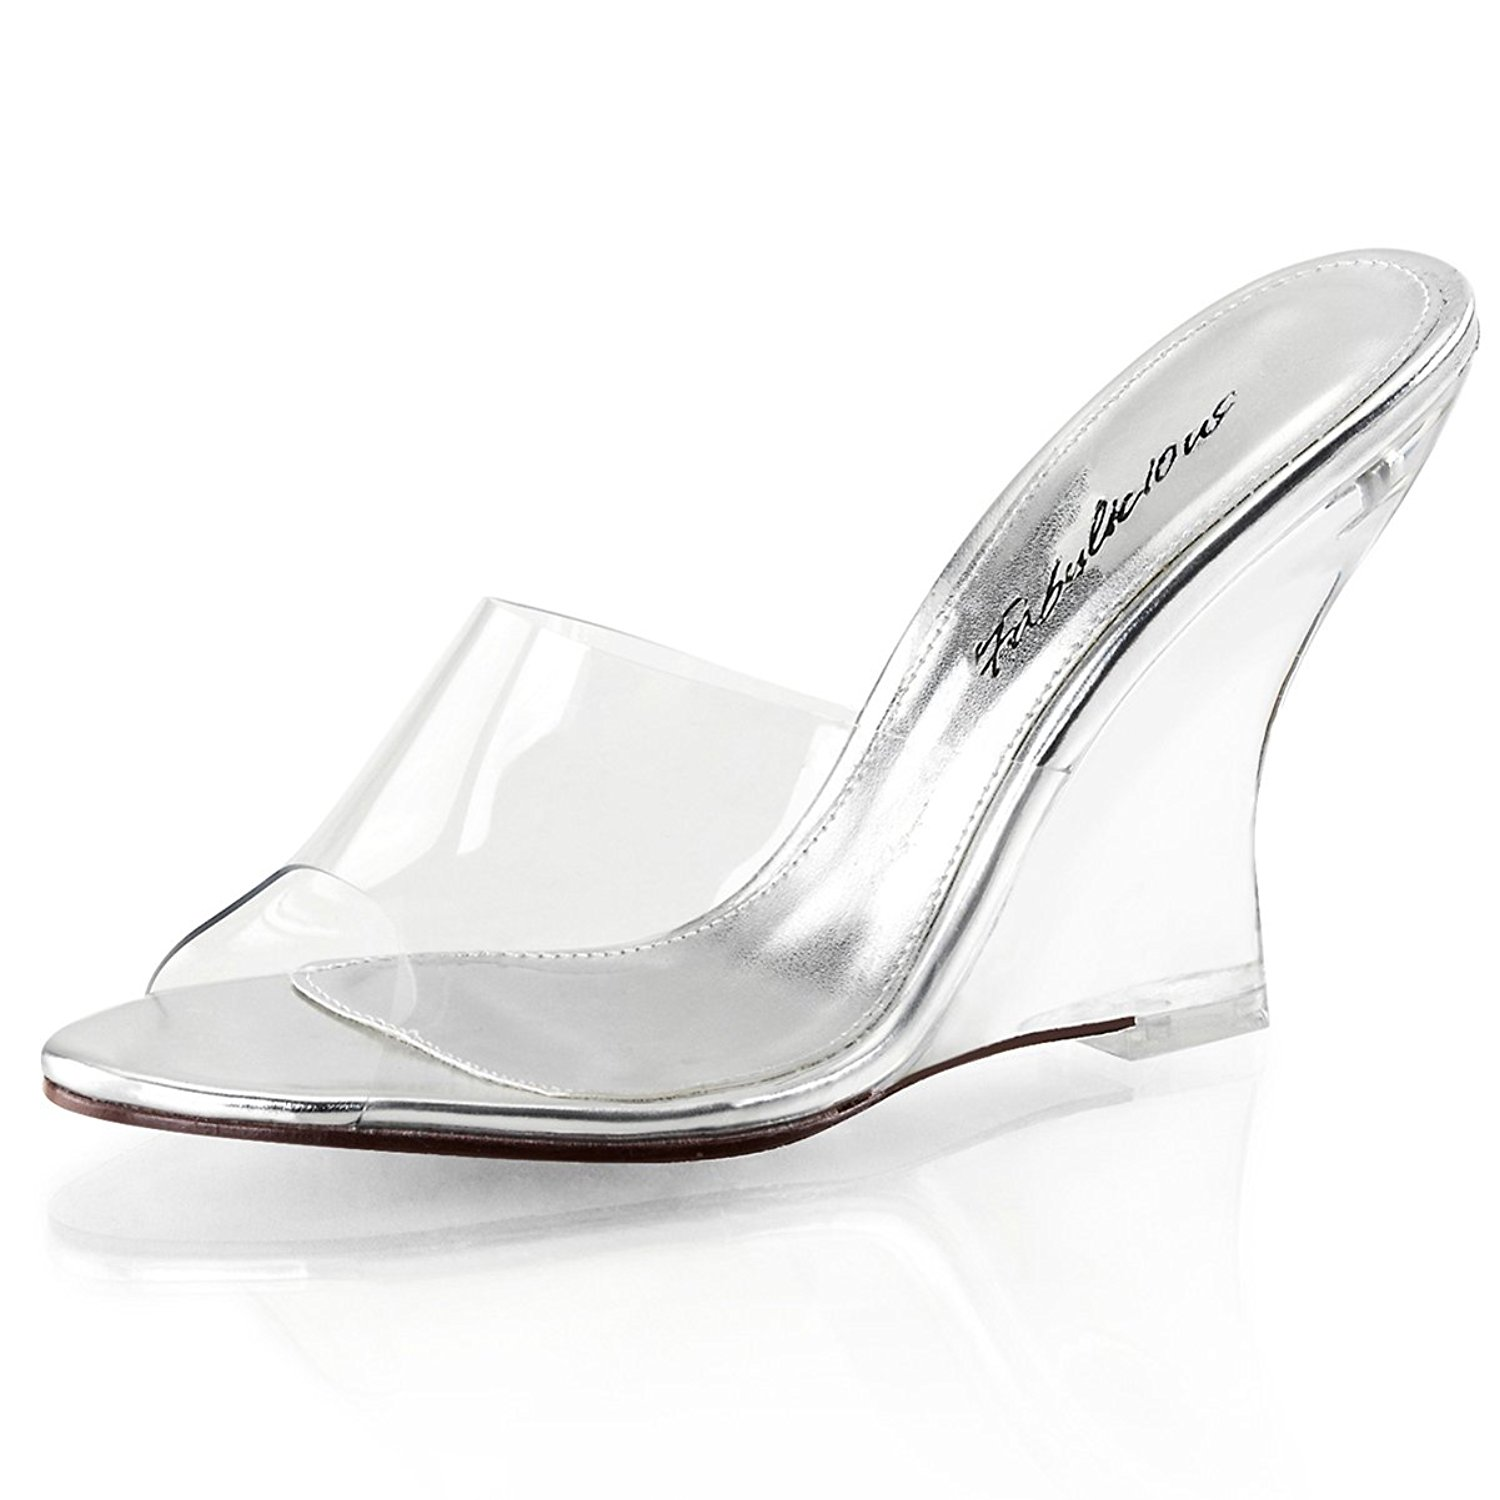 edfbb02766 Get Quotations · Summitfashions Womens Slip on Shoes Clear Slides 4 Inch Heel  Wedges Sandals Clear Strap Heel